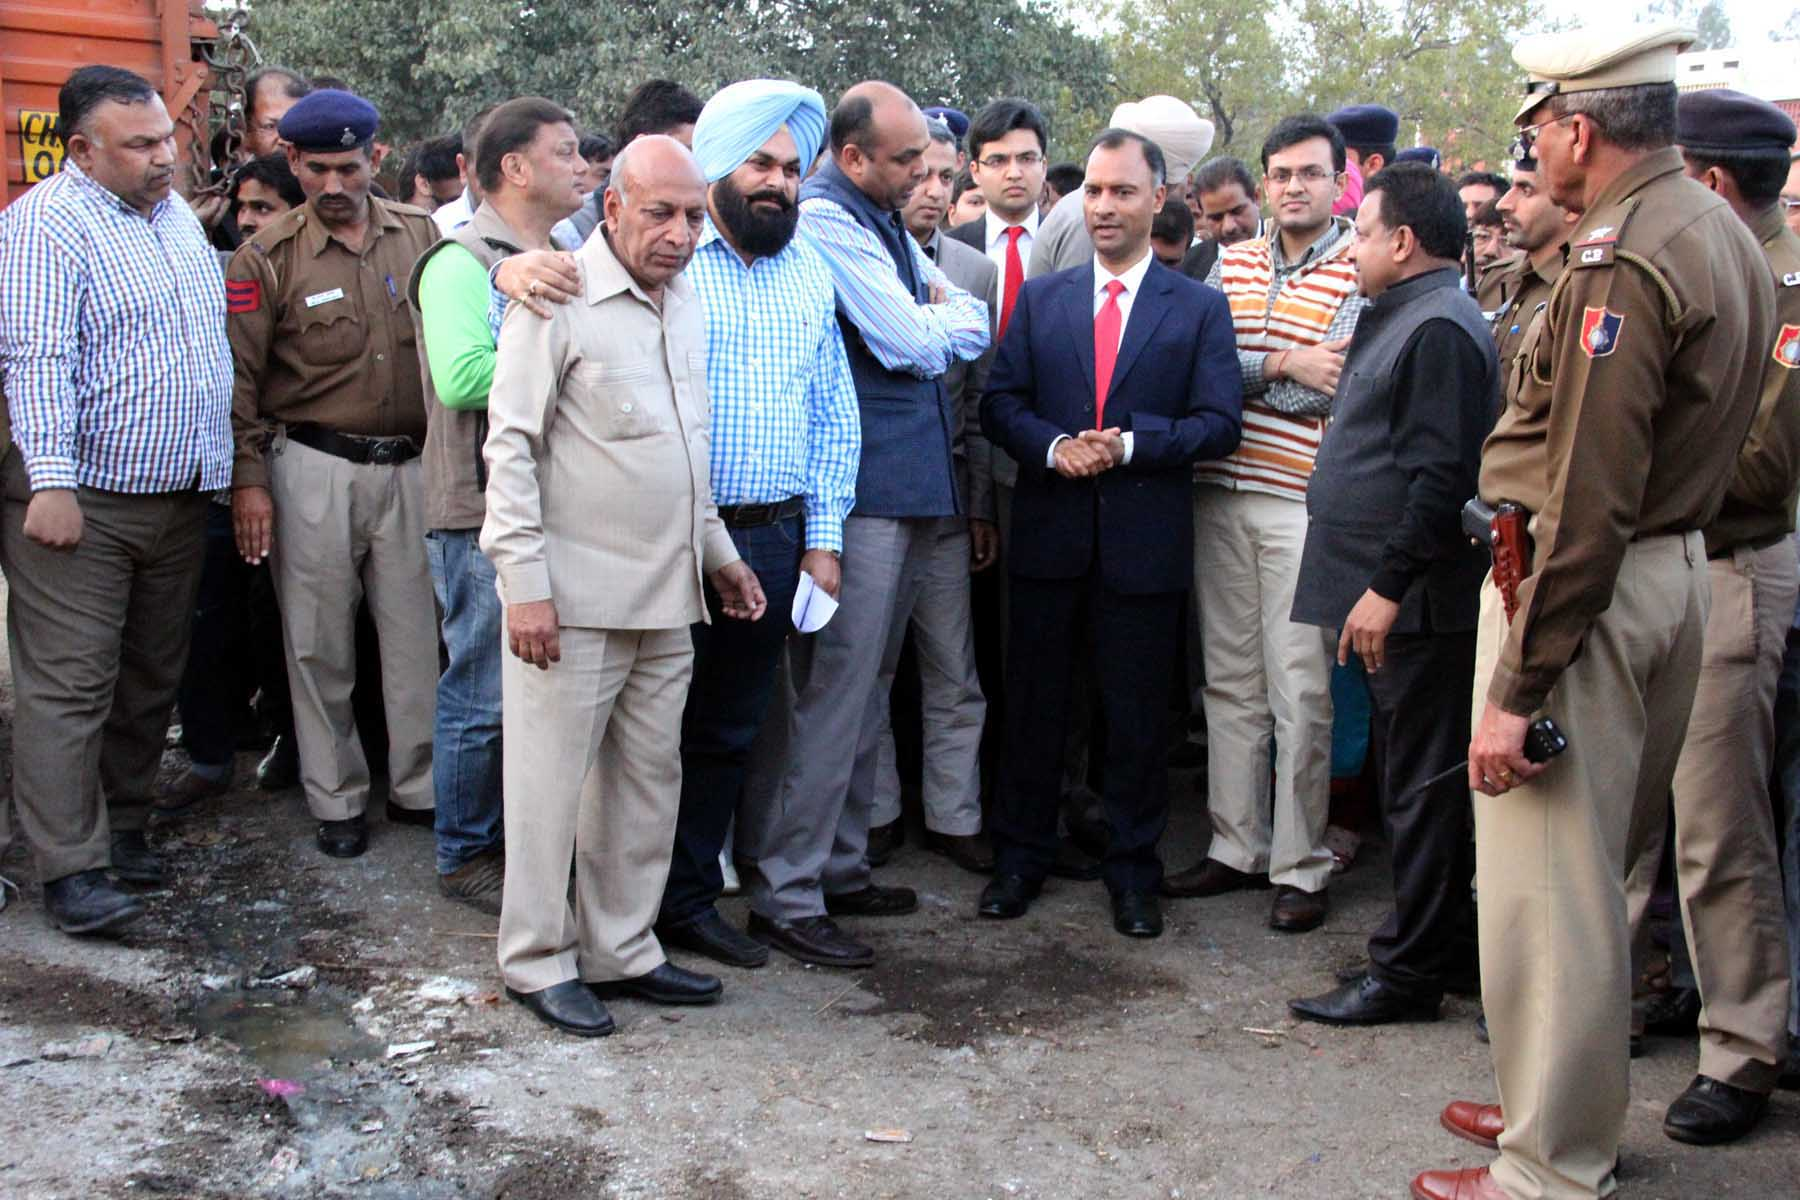 The Adviser to the Administrator, UT, Chandigarh, Mr. Vijay Dev alongwith senior officers visiting at Grain Market, Sector-26, Chandigarh on Friday, February 27, 2015.